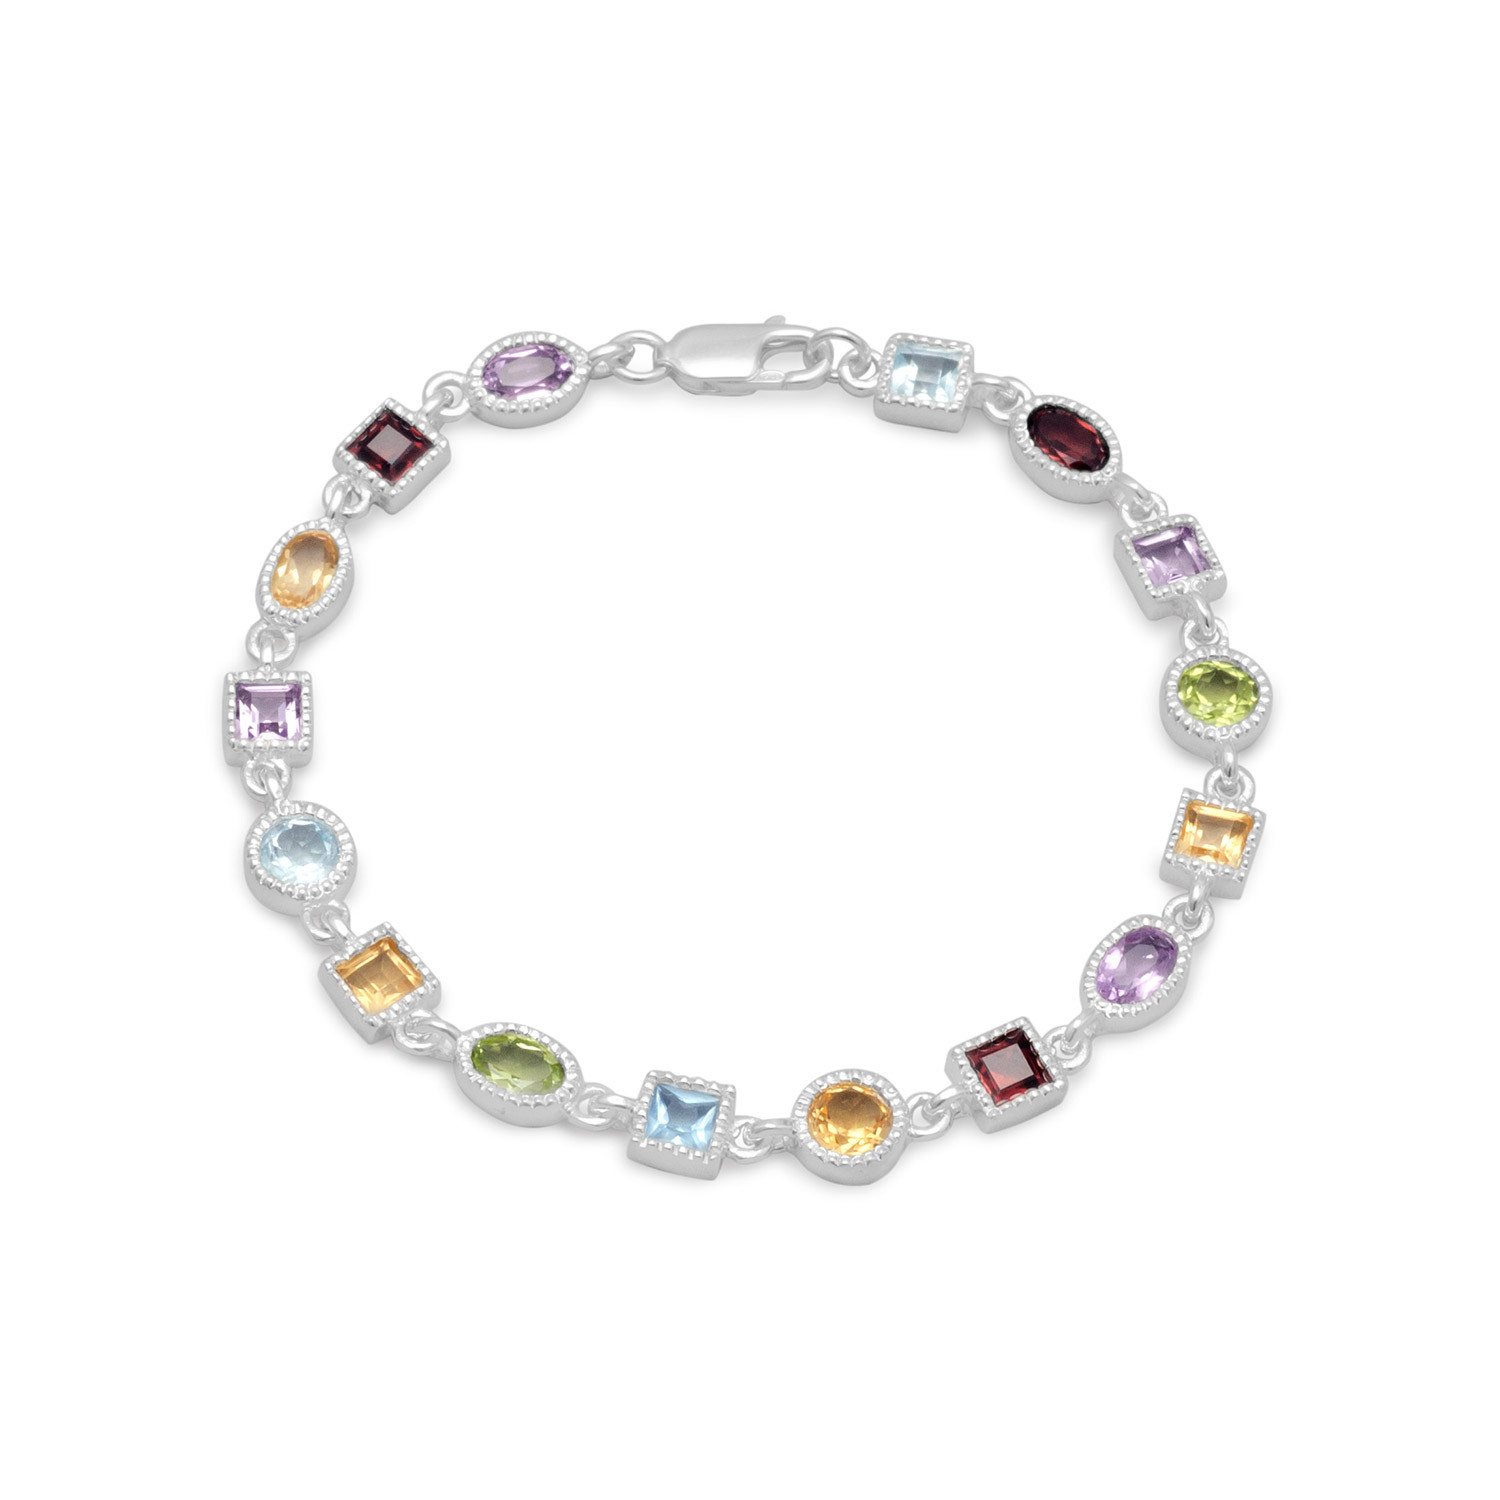 Garnet, Citrine, Amethyst, Peridot, Blue Topaz Sterling Silver Multistone Bracelet by unknown